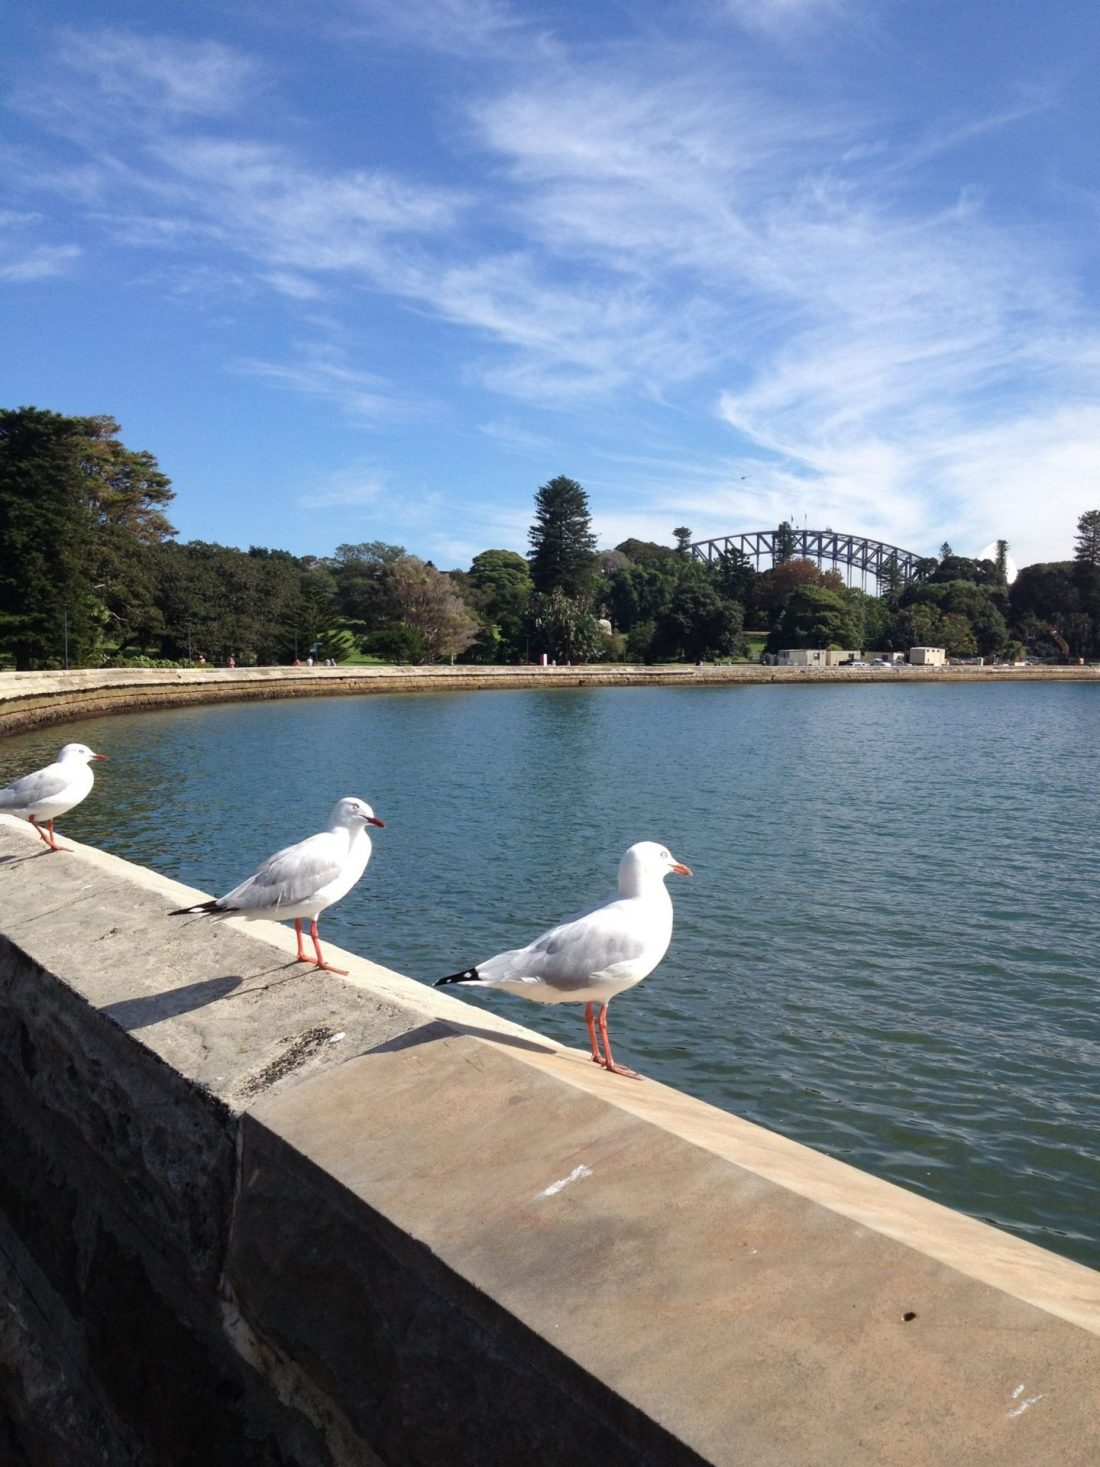 Seagulls and a view of Sydney Harbour